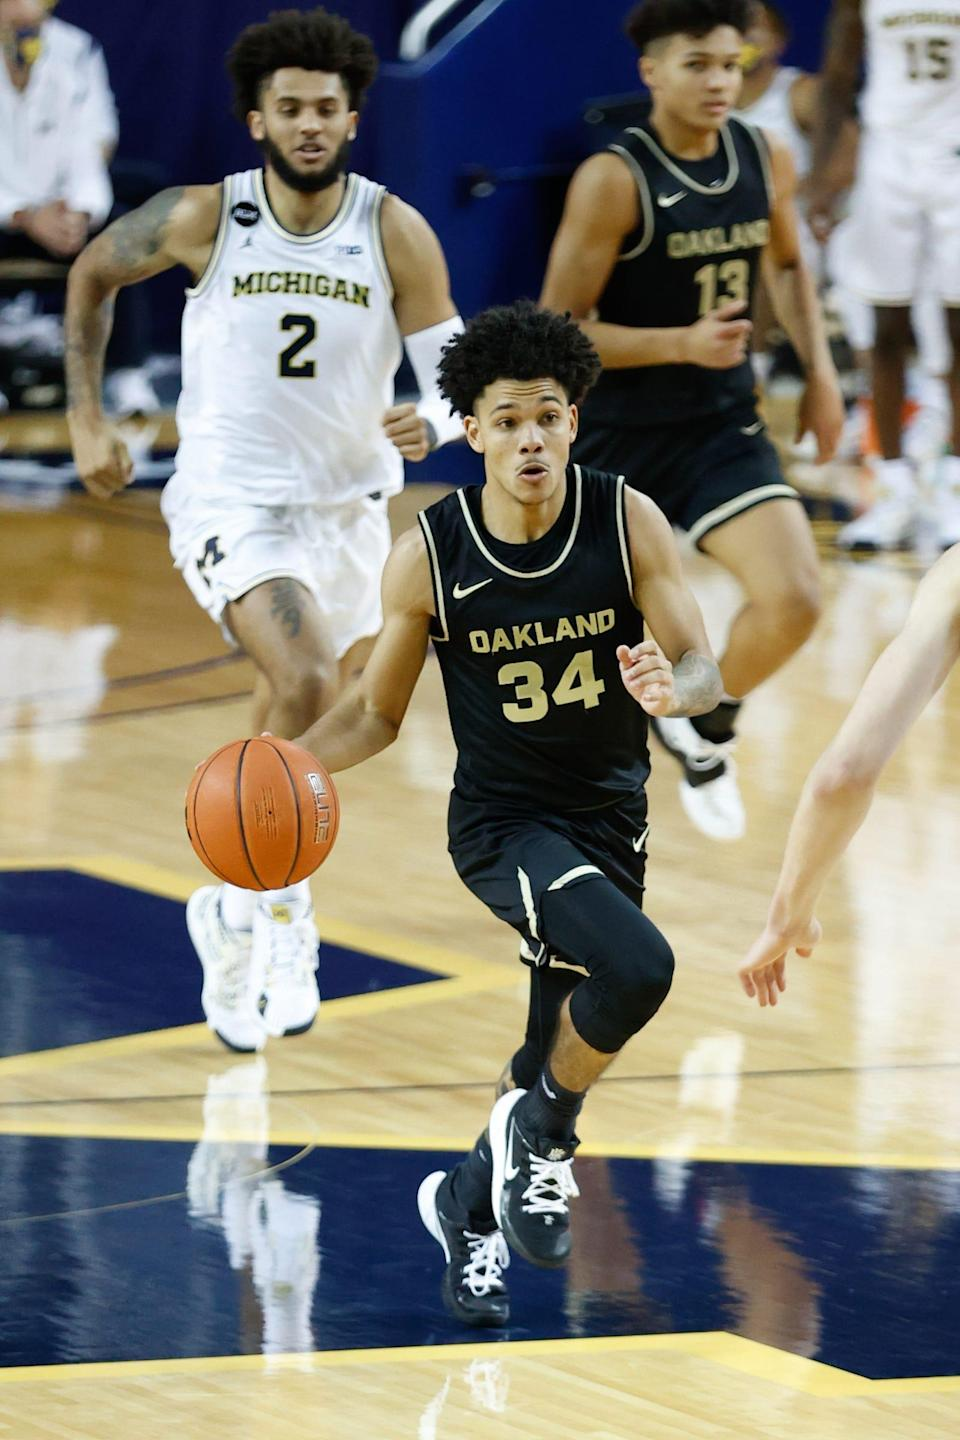 Oakland Golden Grizzlies guard Jalen Moore (34) dribbles in the second half against the Michigan Wolverines on Nov. 28, 2020, at Crisler Center in Ann Arbor.